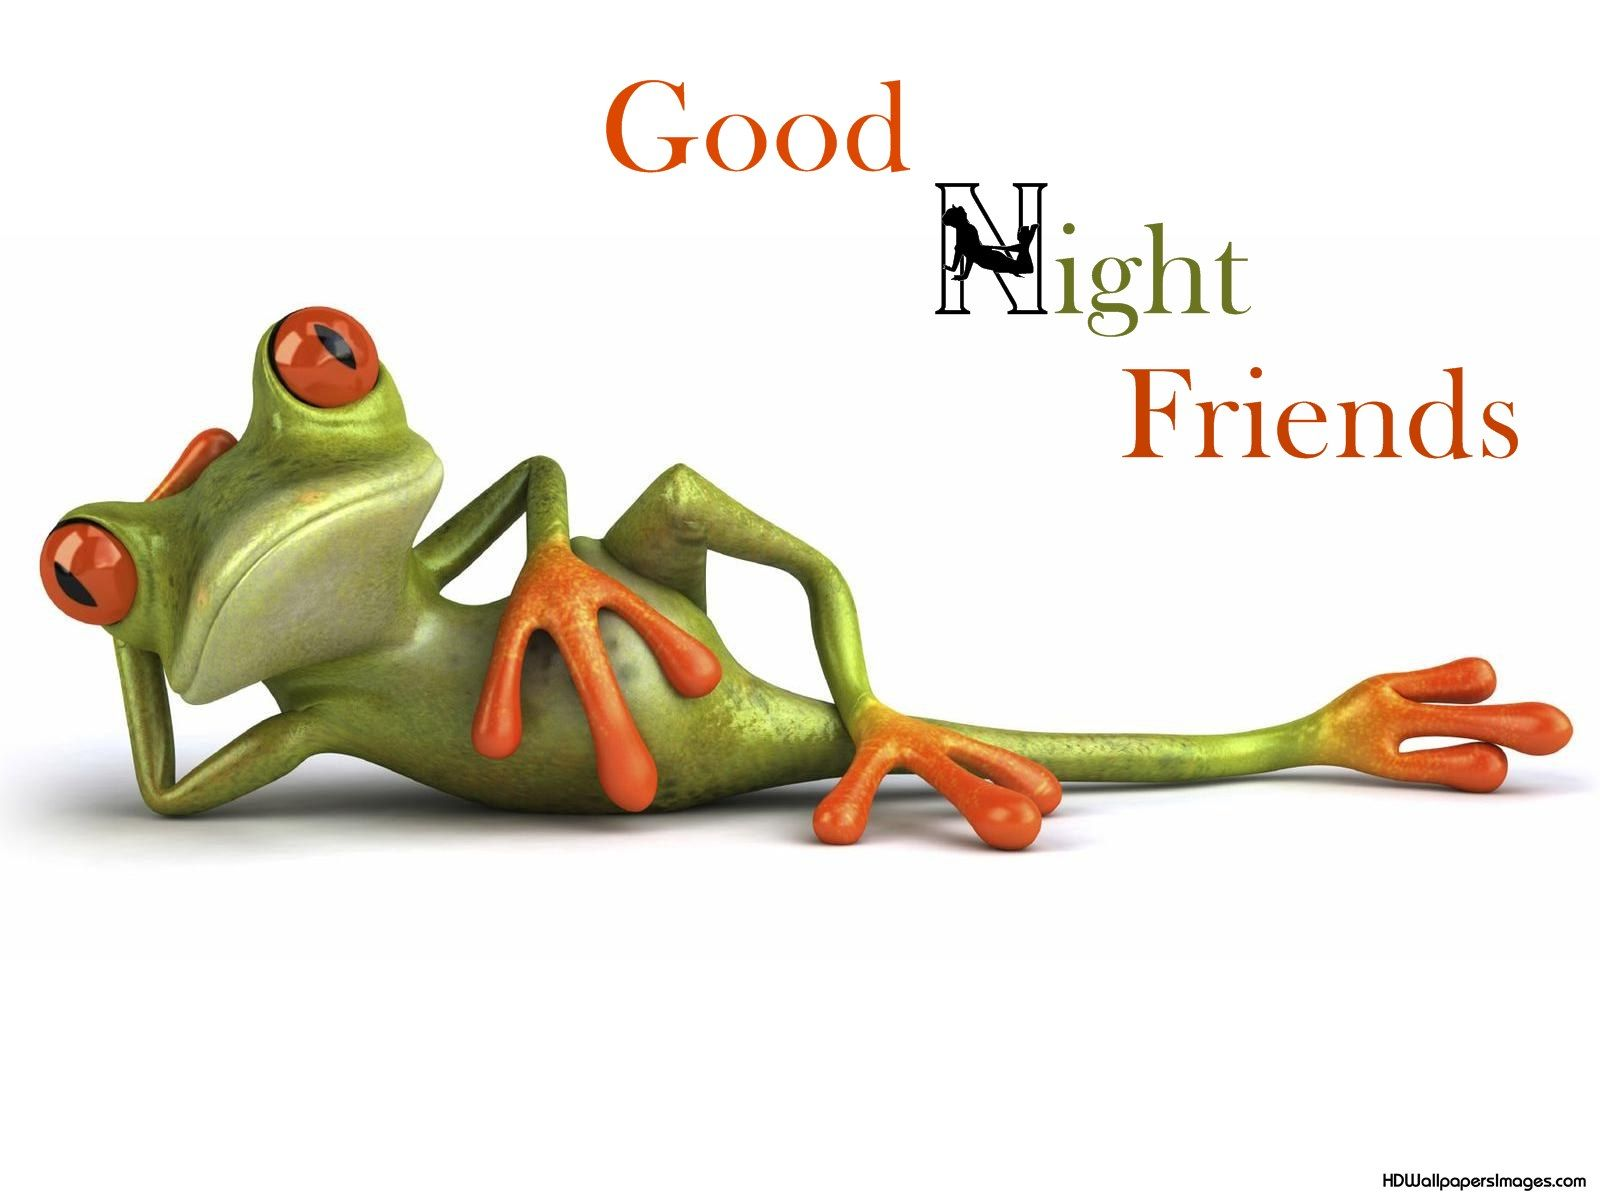 Wallpaper download mood off - Funny Good Night Images Pictures Wallpapers Scraps Funny Scraps For Girl Friend